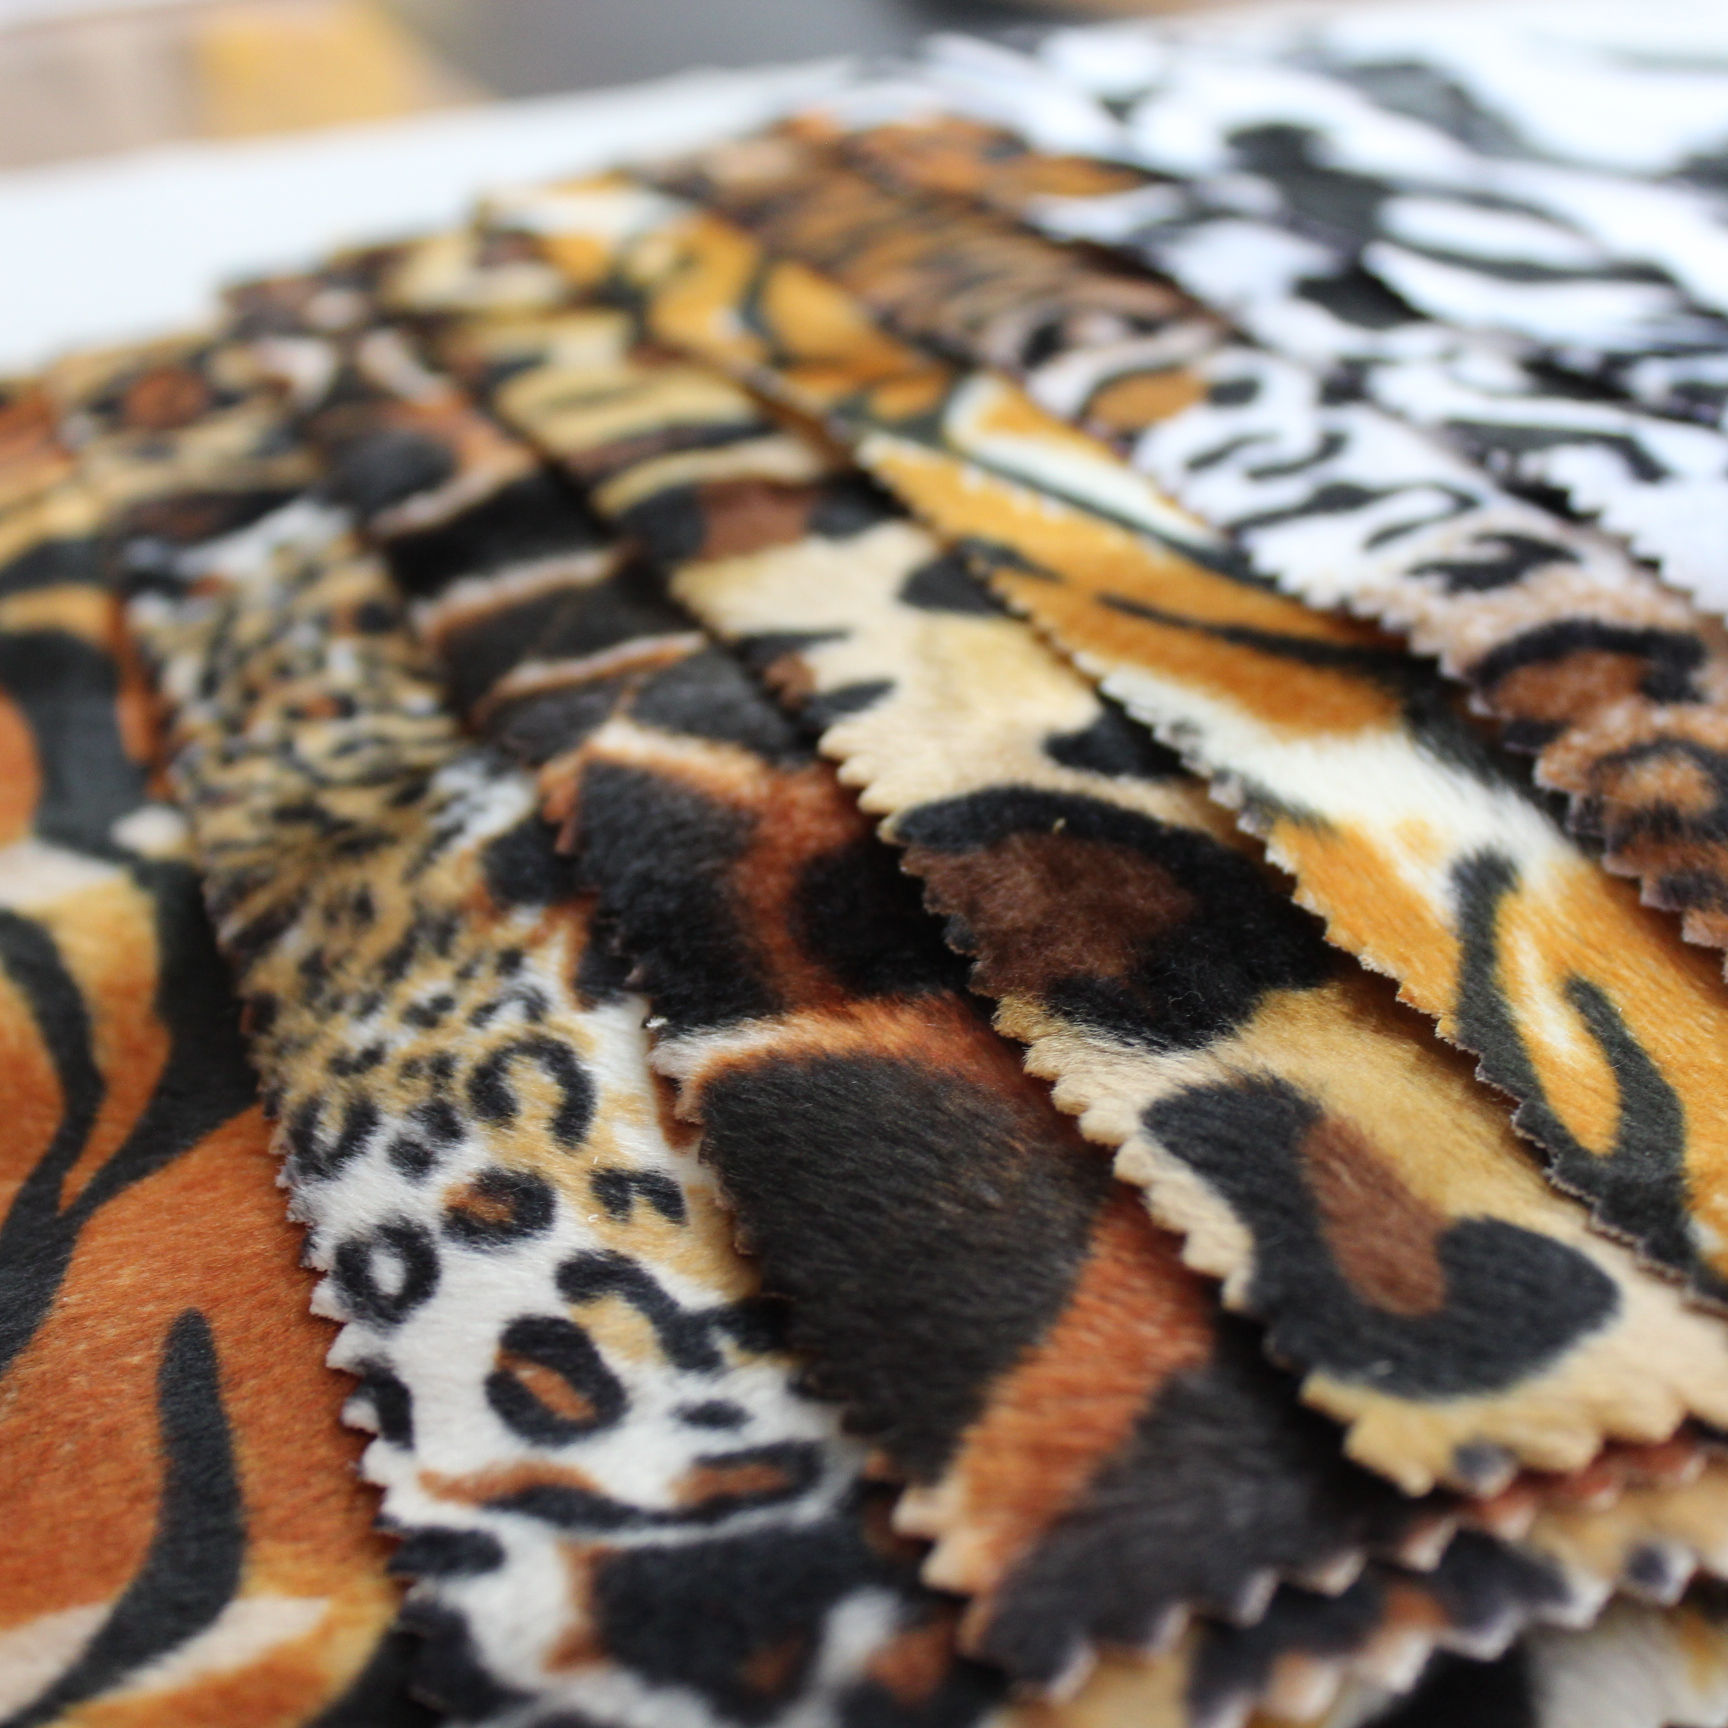 Tear-resistant Cheap Price Polyester Spandex Super Soft Comfortable Stretch Velvet Fleece Digital Animal Print Knit Fabric